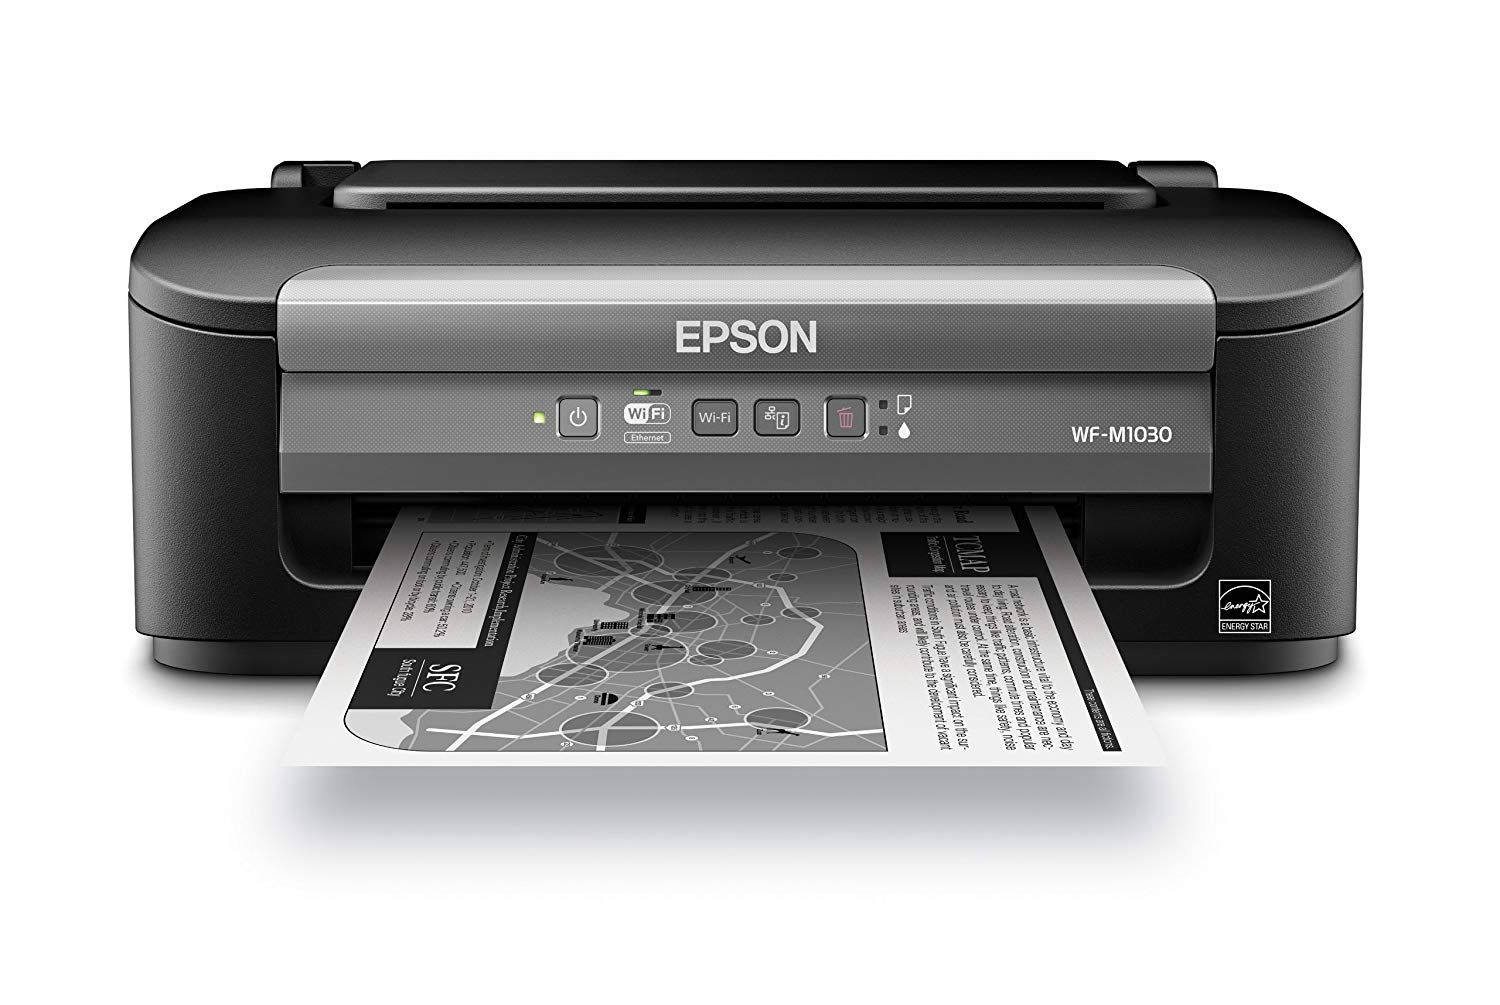 Epson Wf 100 Laser Printer For The Professional In You Laser Printer Wireless Printer Printer